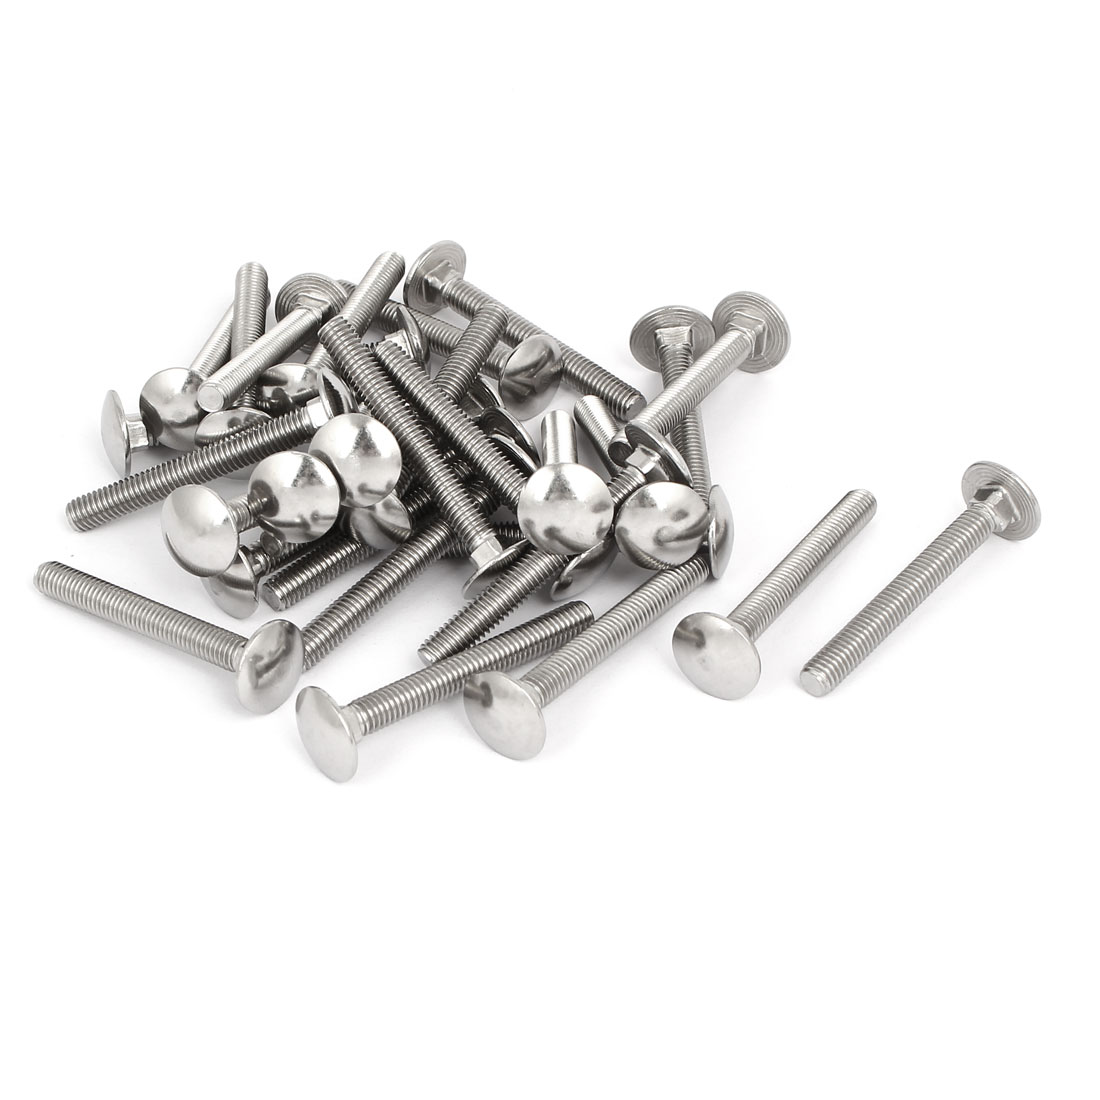 M6x50mm 304 Stainless Steel Fully Thread Square Neck Carriage Bolts DIN603 30pcs